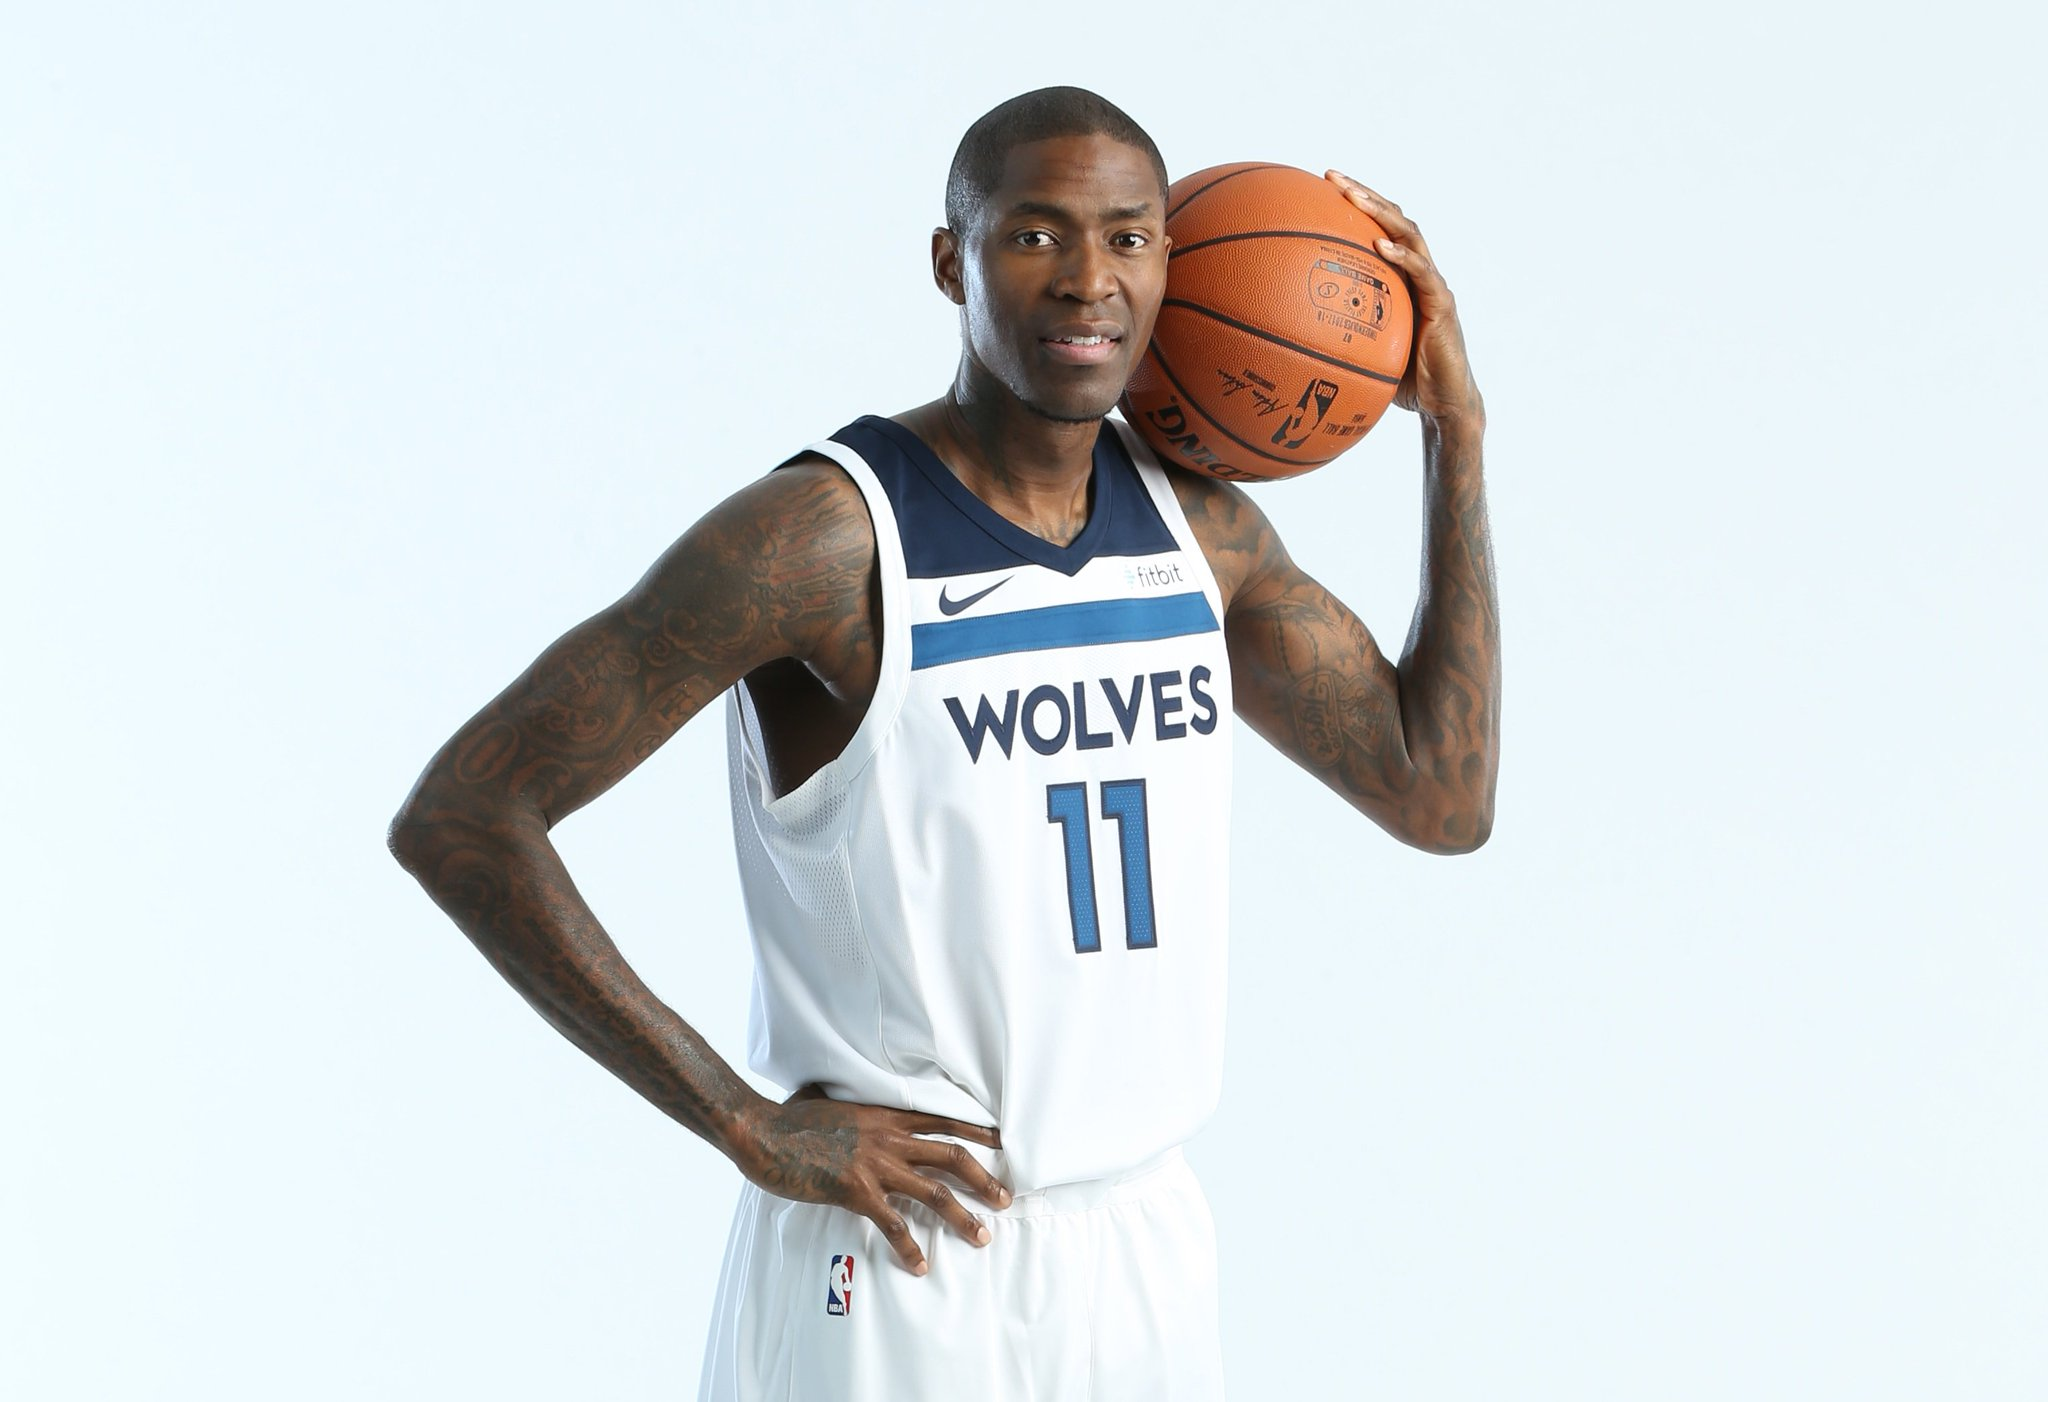 Join us in wishing @JCrossover of the @Timberwolves a HAPPY 38th BIRTHDAY!   #NBABDAY #AllEyesNorth https://t.co/ormZL6UXlS